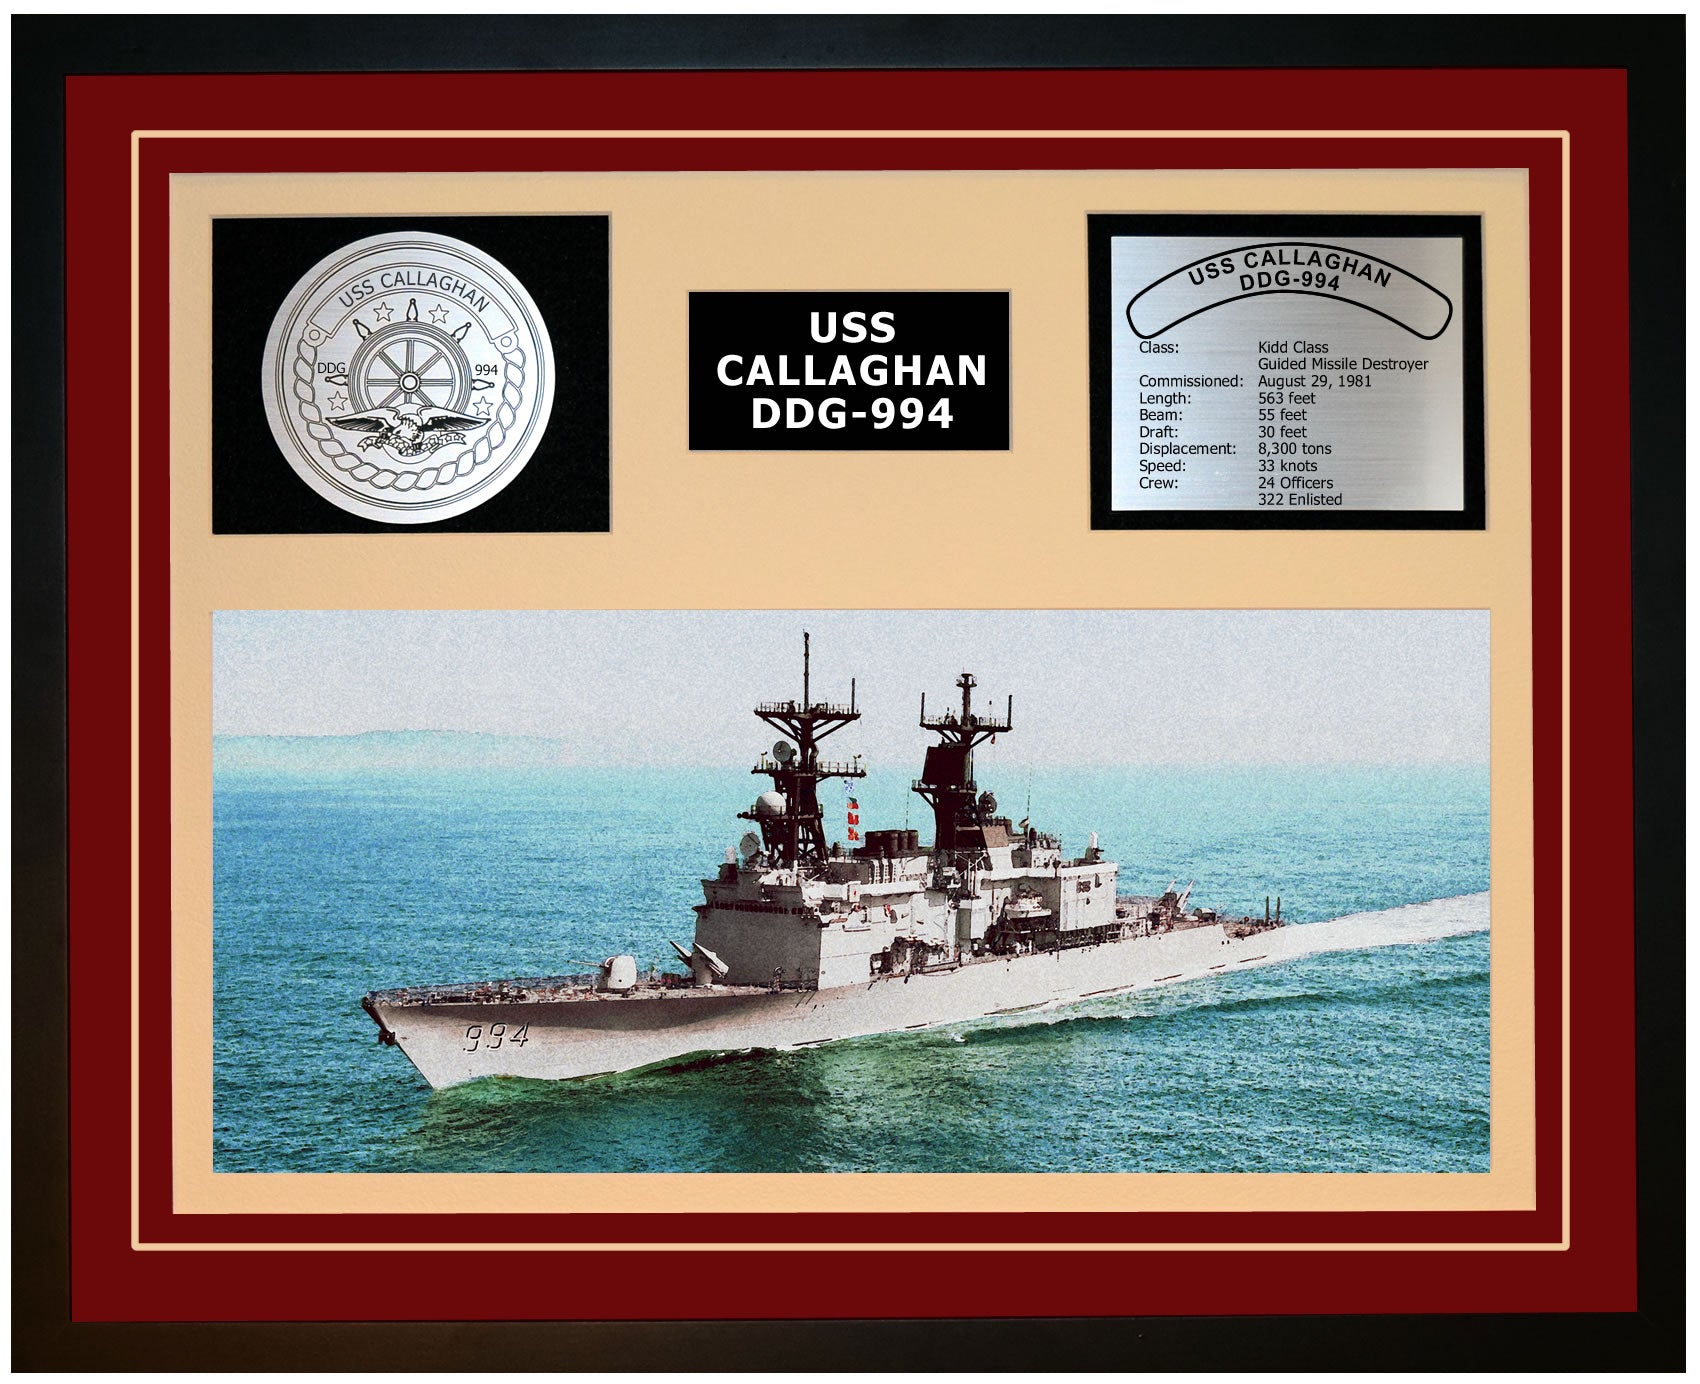 USS CALLAGHAN DDG-994 Framed Navy Ship Display Burgundy